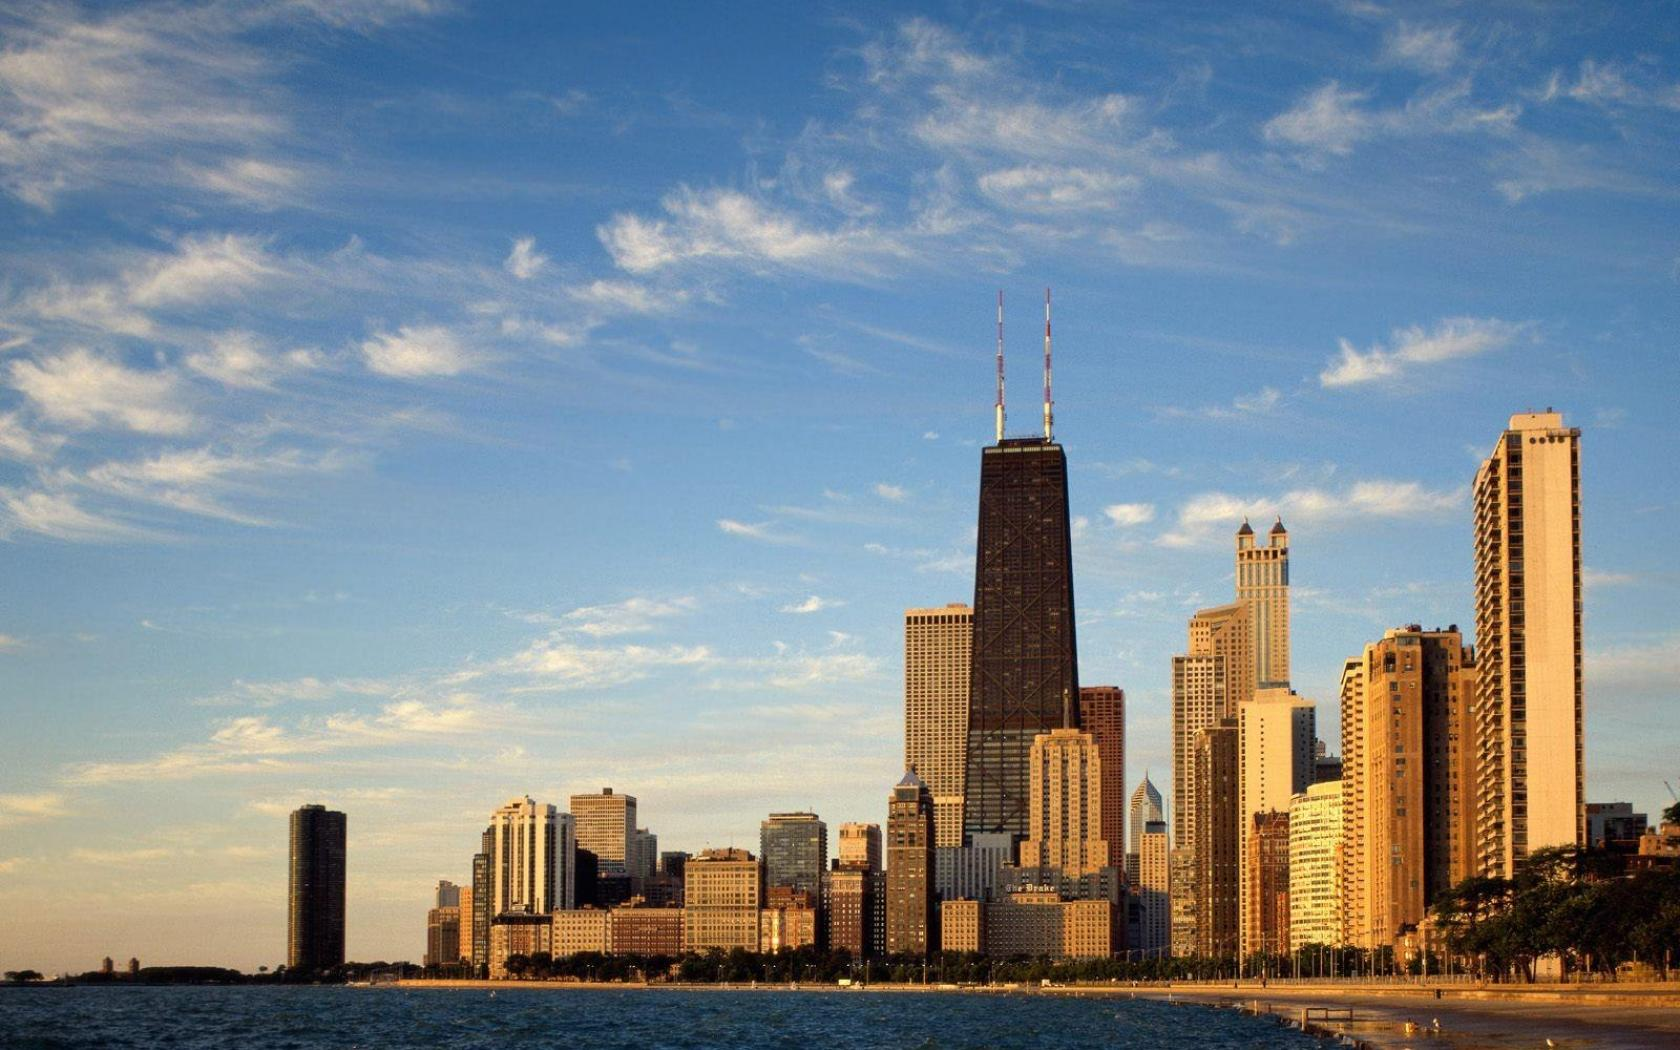 Normal resolutions: 1024x768 1280x1024. Wallpaper Tags: chicago city buildings ...